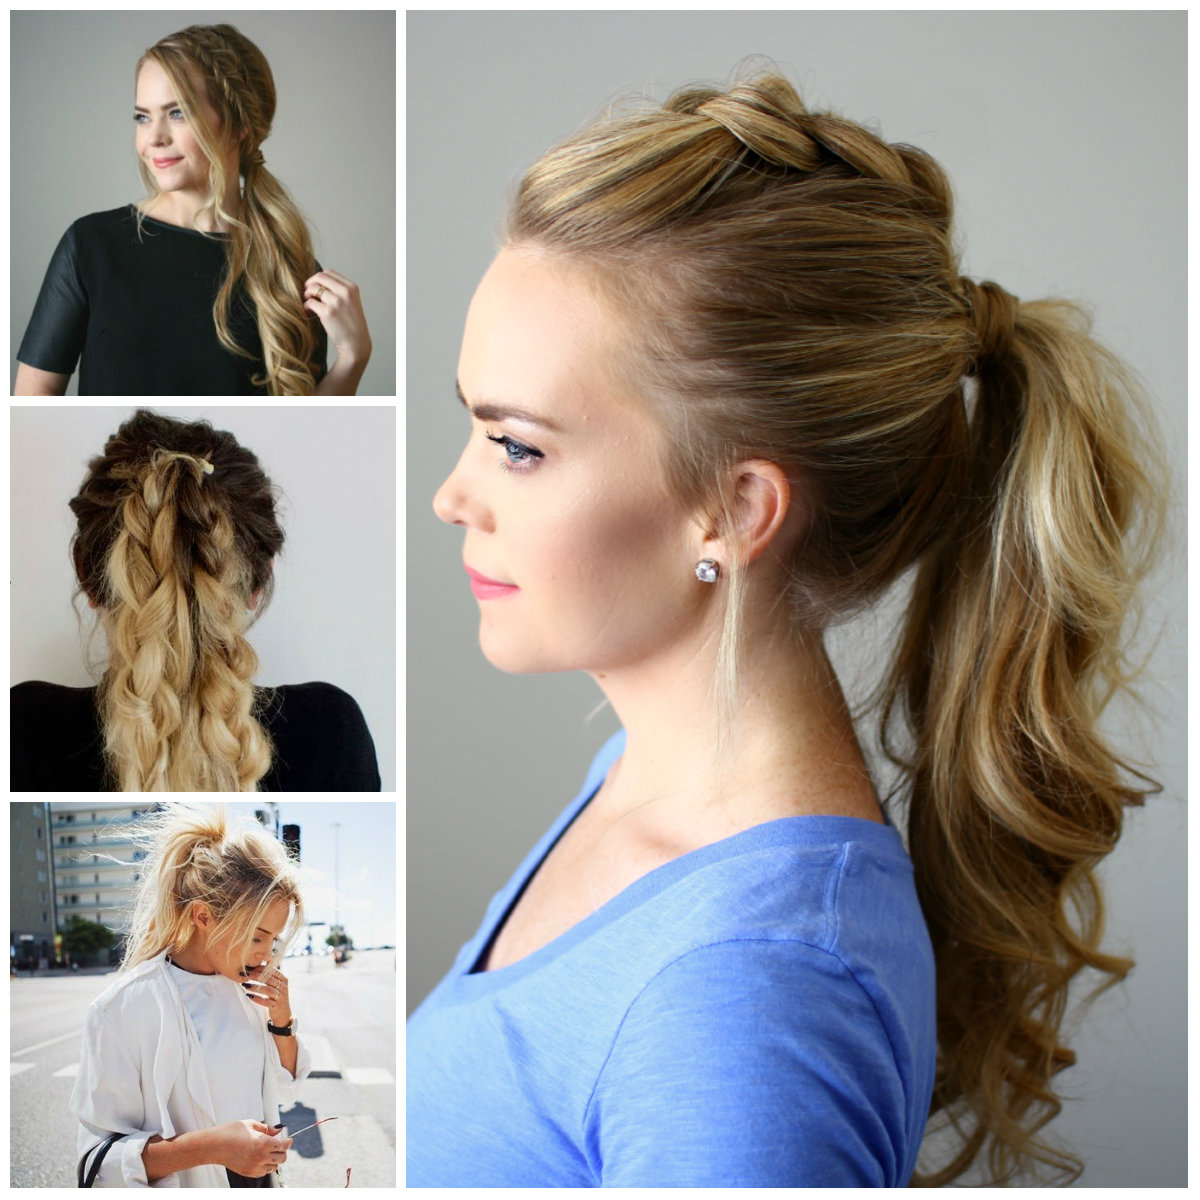 How to Do Easy Hairstyles at Home 2017 for Girls - Romantic Love Messages, Quotes and Wishes